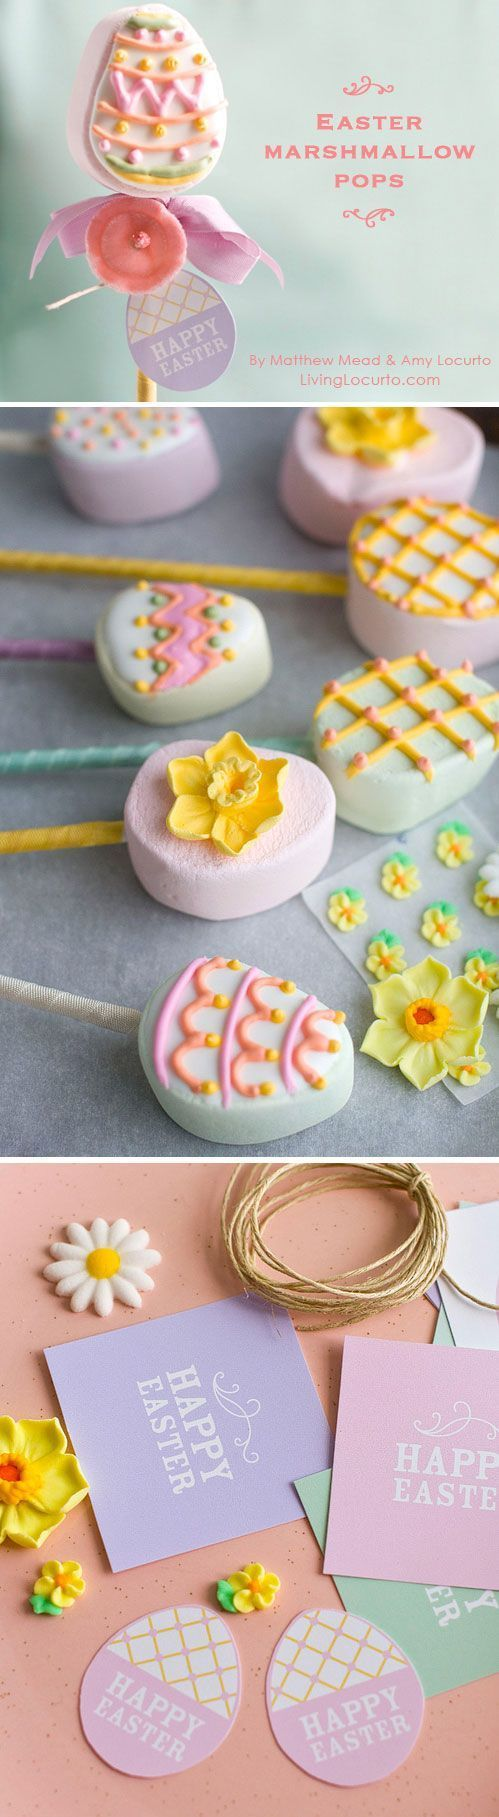 70 best easter ideas images on pinterest easter food drink and easter easter egg marshmallow pops free printables by amy locurto and matthew mead perfect diy negle Gallery